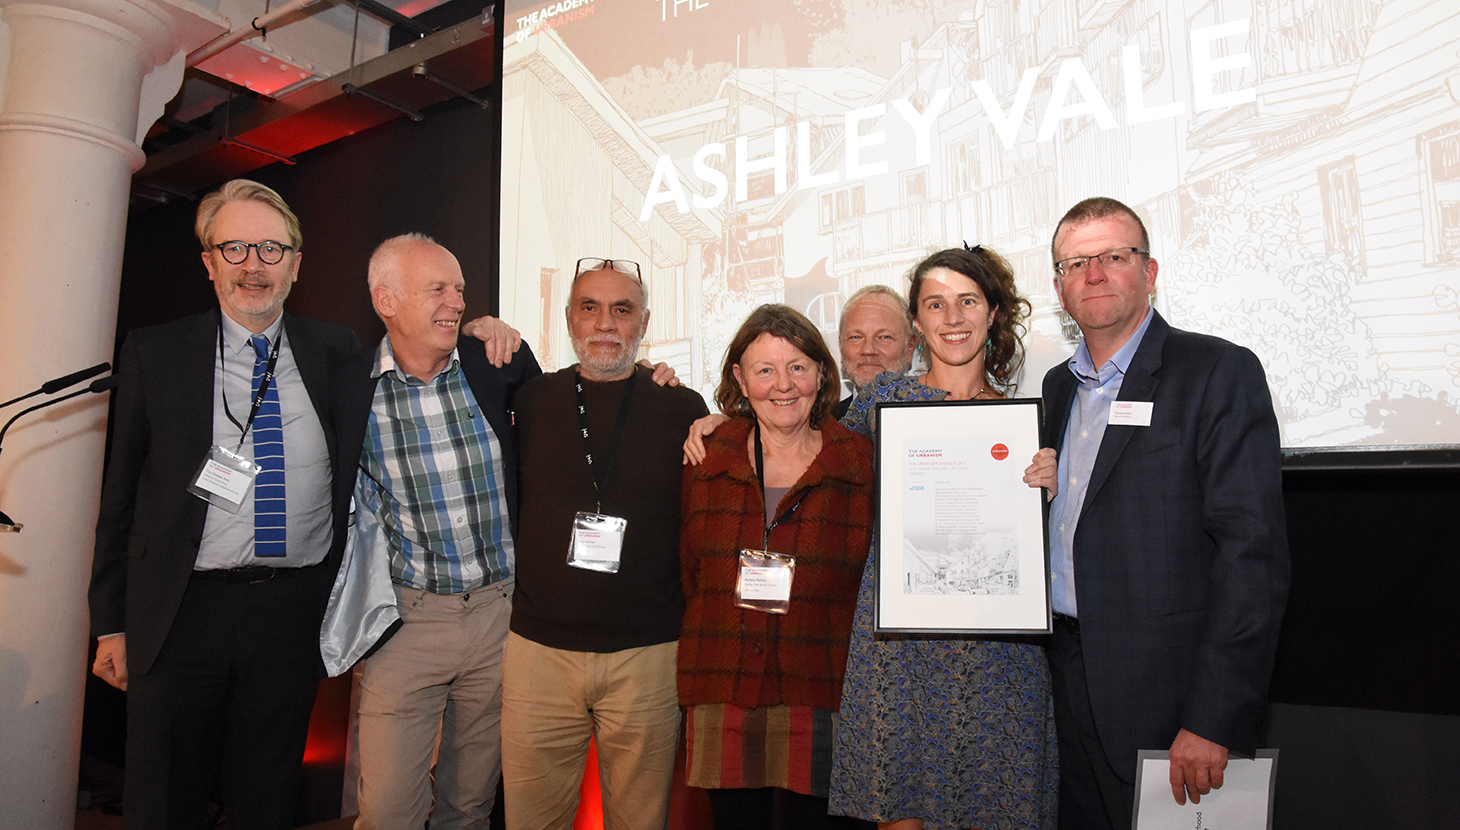 Ashley Vale wins The Great Neighbourhood Award